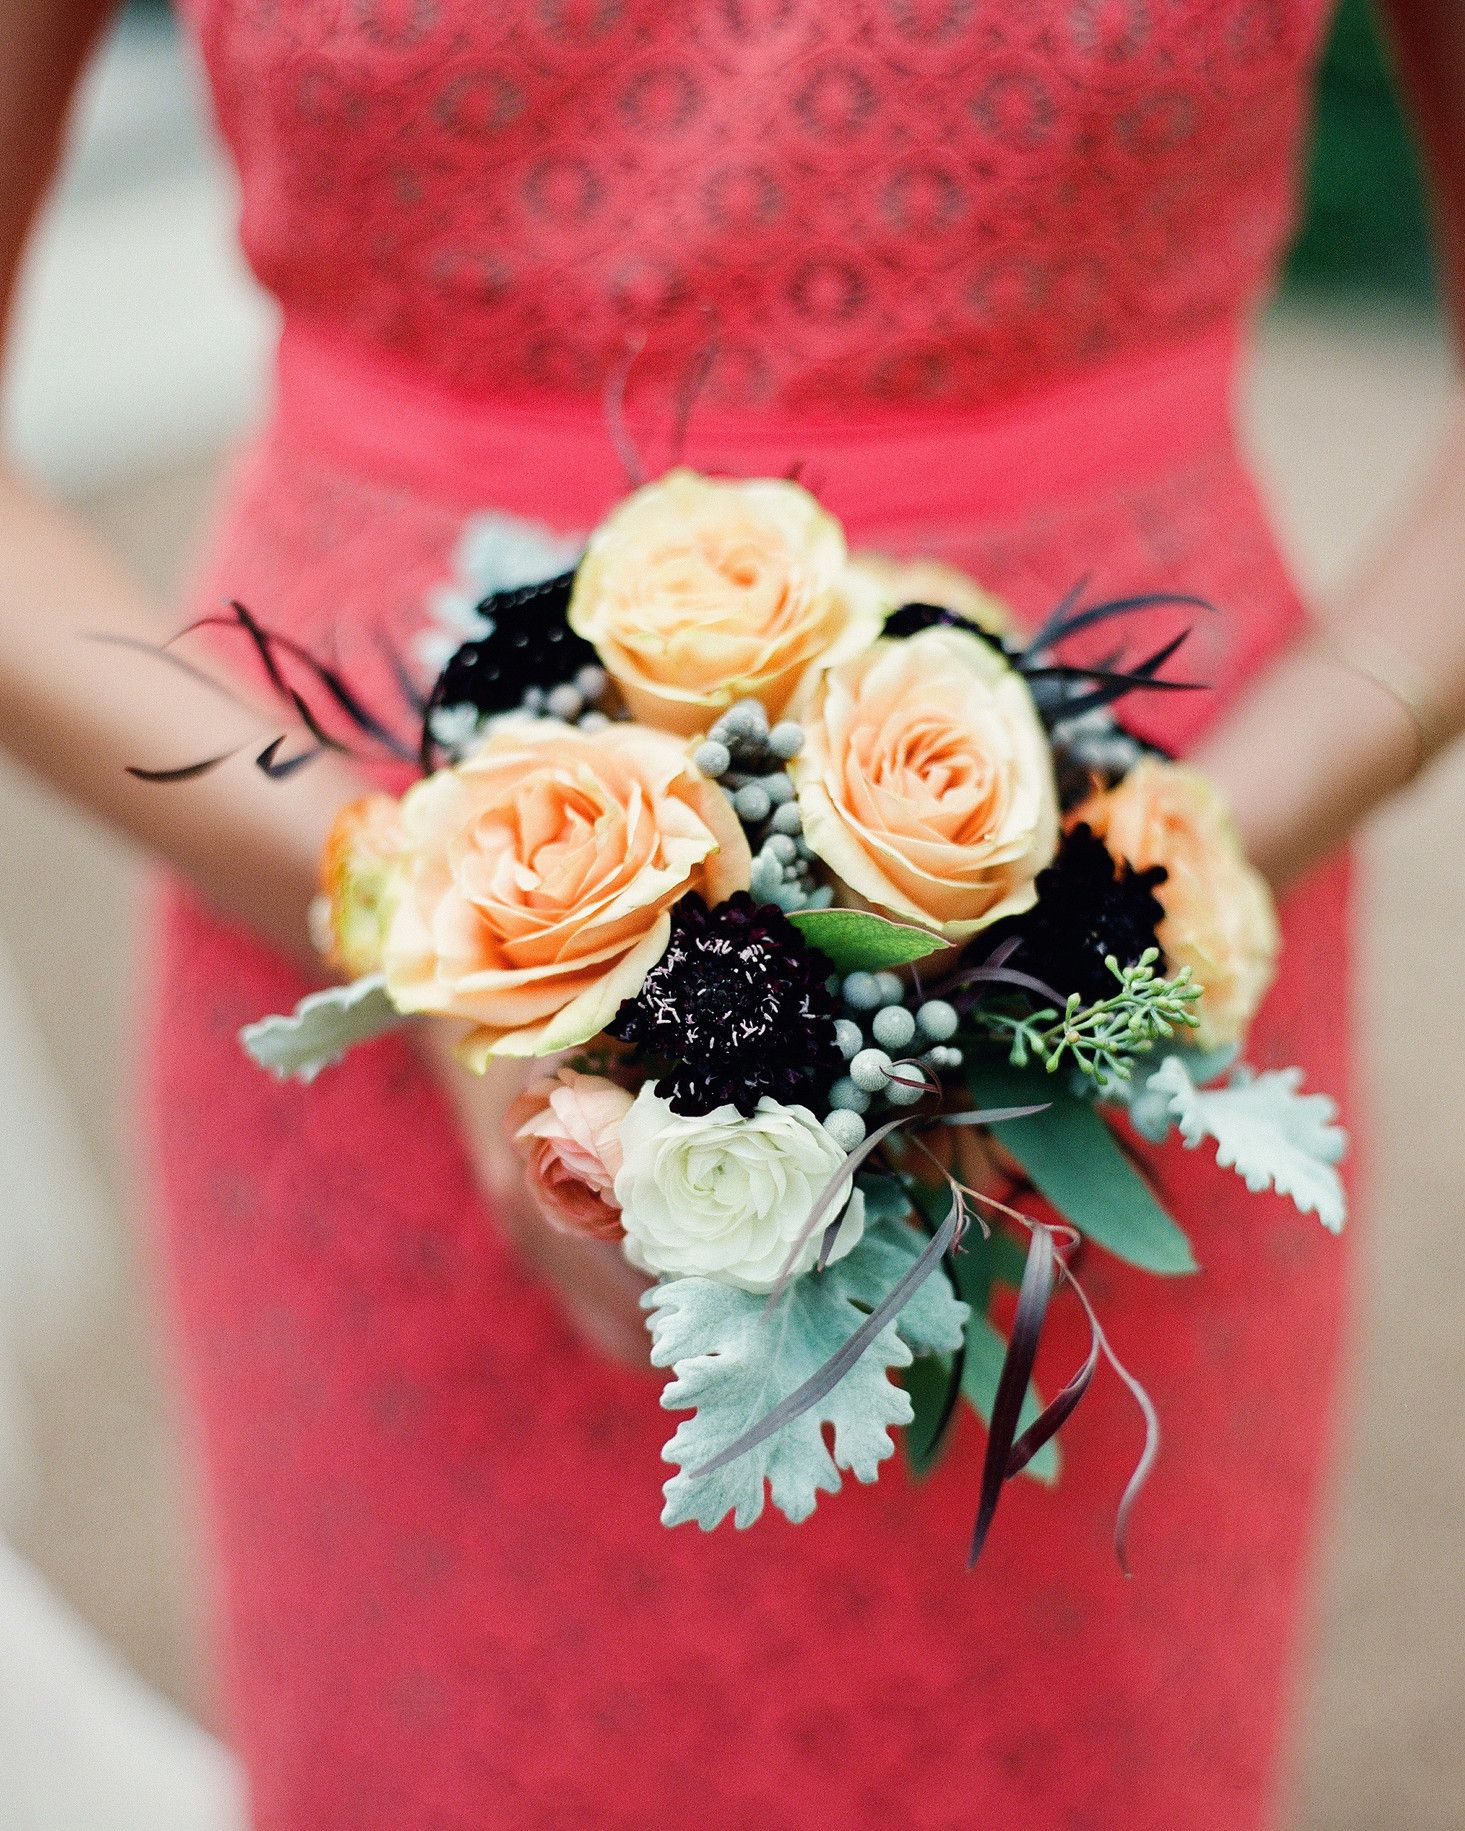 49 Bridesmaid Bouquets Your Girls Will Love Bridesmaid Bouquet Wedding Bouquets Coral Wedding